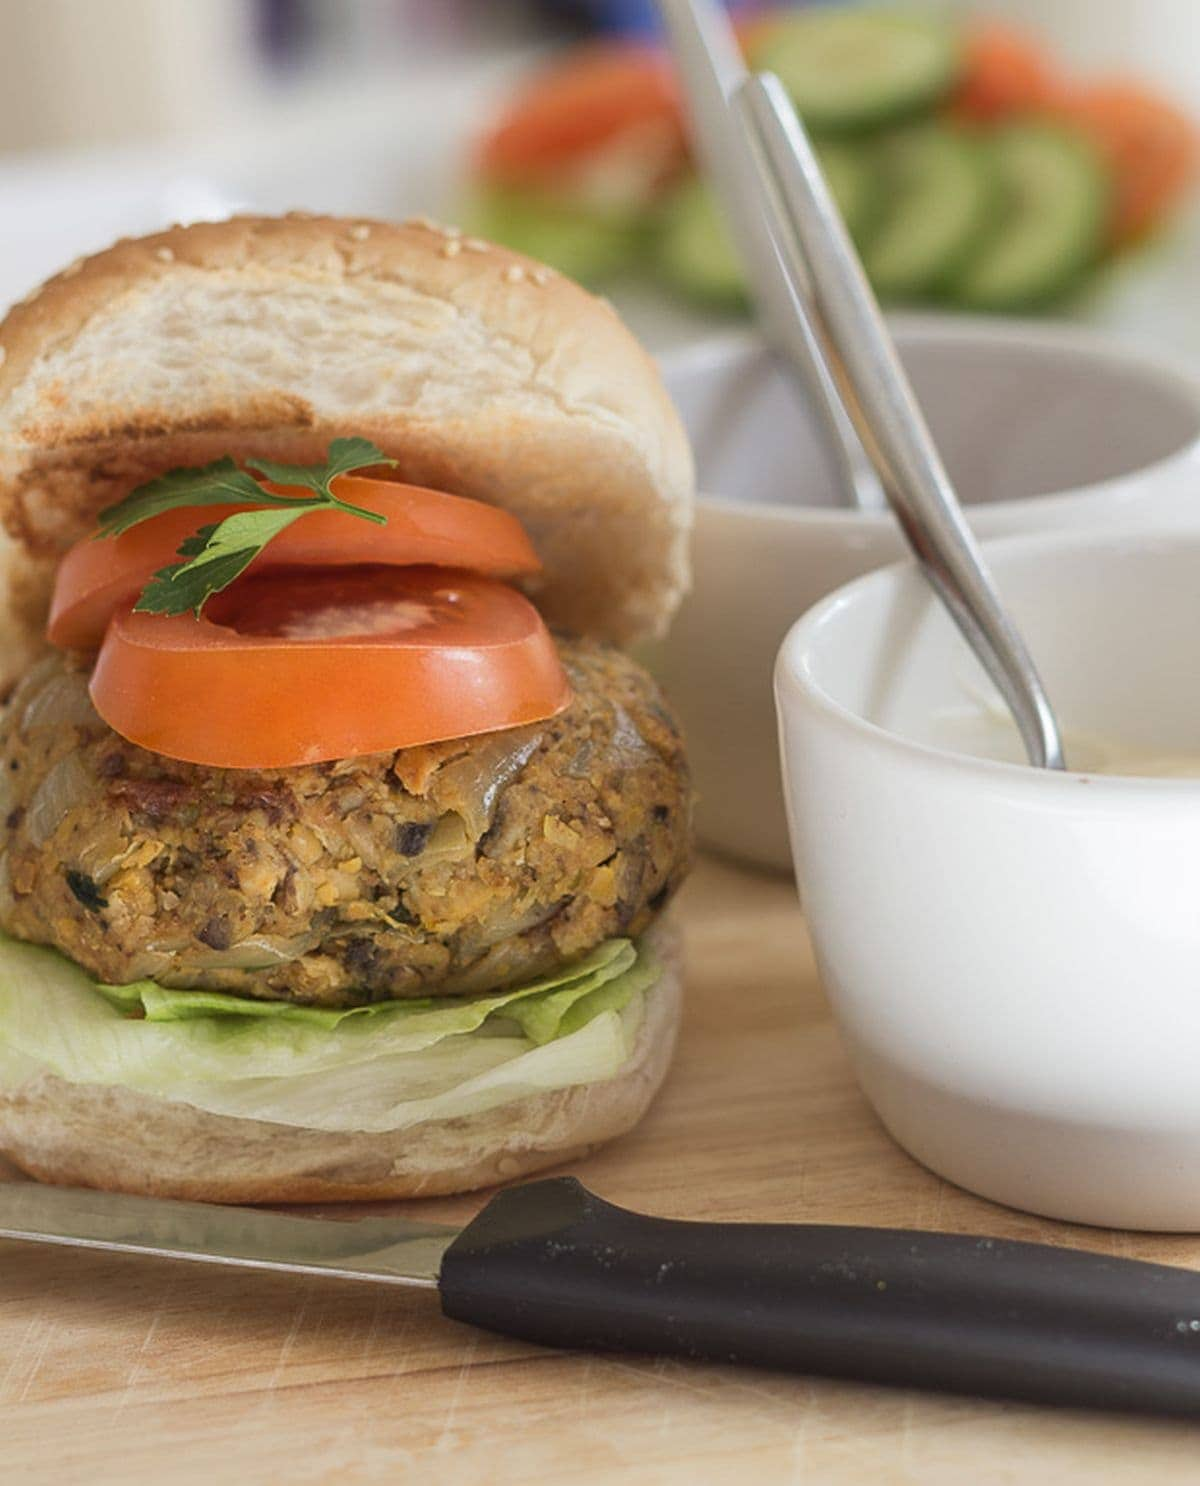 A chickpea burger in a burger bun with sliced tomotoes on top. A small bowl of mayonnaise with a spoon in to the right.